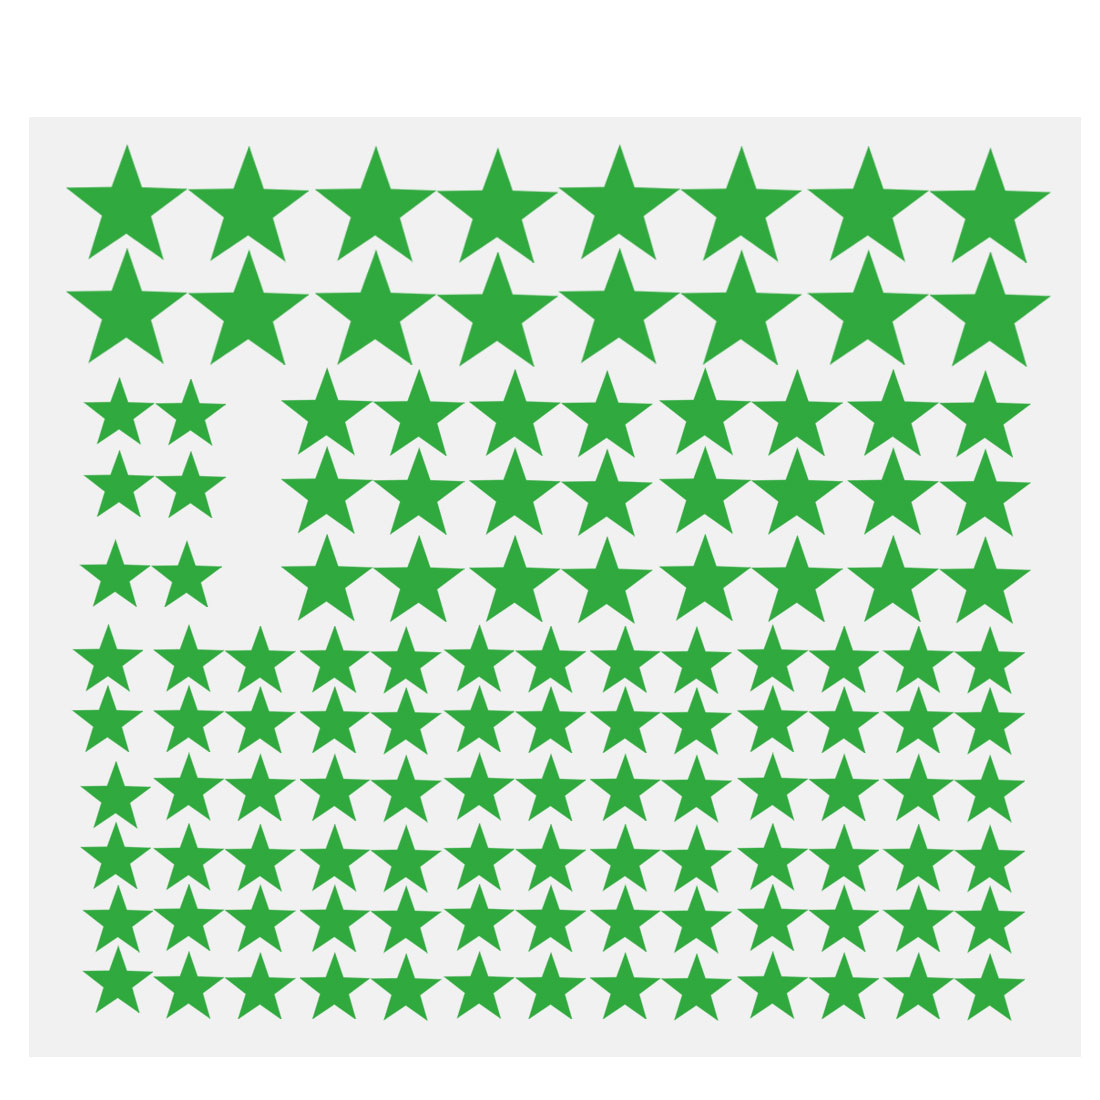 110pcs Star Pattern Wall Stickers Removable Art Decal for Bedroom Green